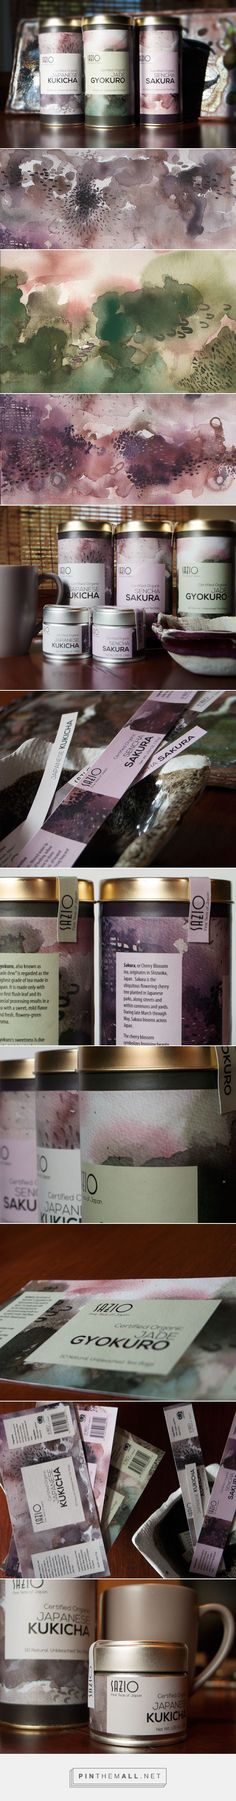 Art direction, branding and packaging for Sazio Tea Branding & Packaging on Behance by Michele Alise Los Angeles, CA curate by Packaging Diva PD. Tea packaging label design featuring abstract watercolors, earth tones, and clean typography.